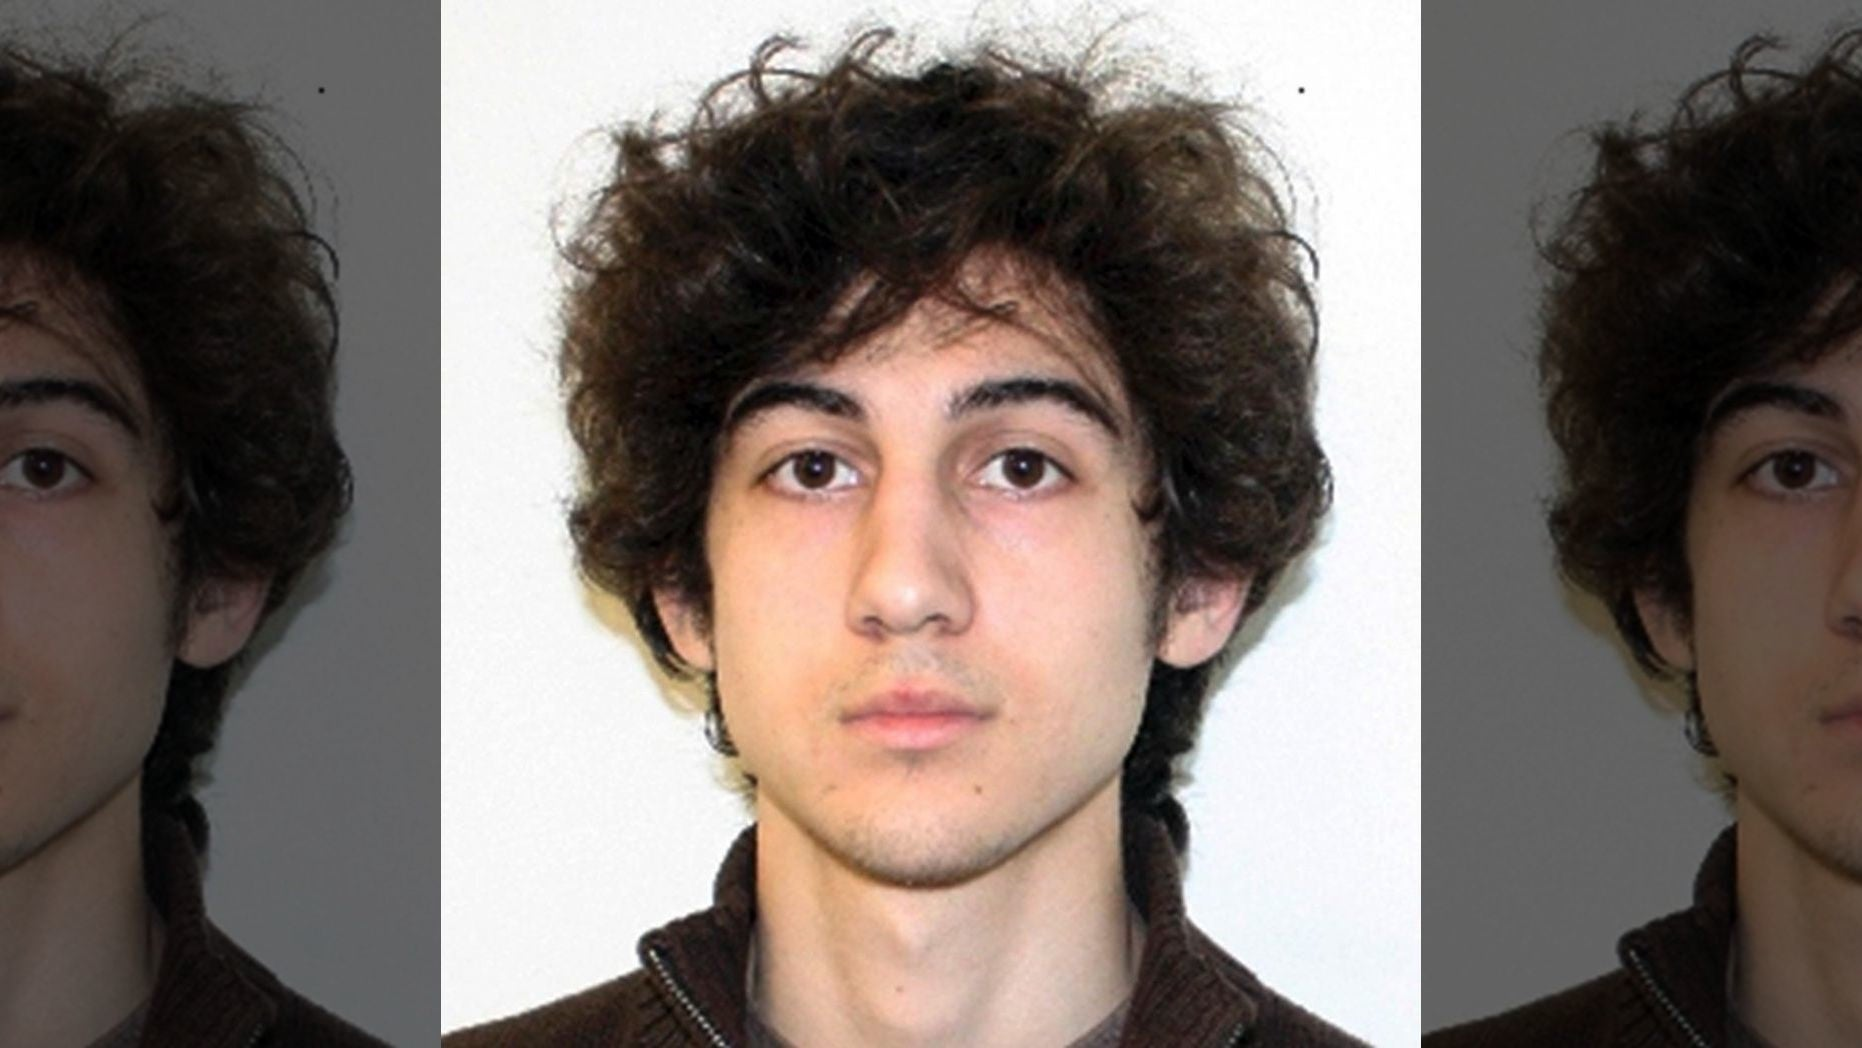 This file photo released April 19, 2013 by the Federal Bureau of Investigation shows Boston Marathon bombing suspect Dzhokhar Tsarnaev, convicted of 30 federal charges in the 2013 bombing at the marathon finish line that killed three people and injured more than 260.